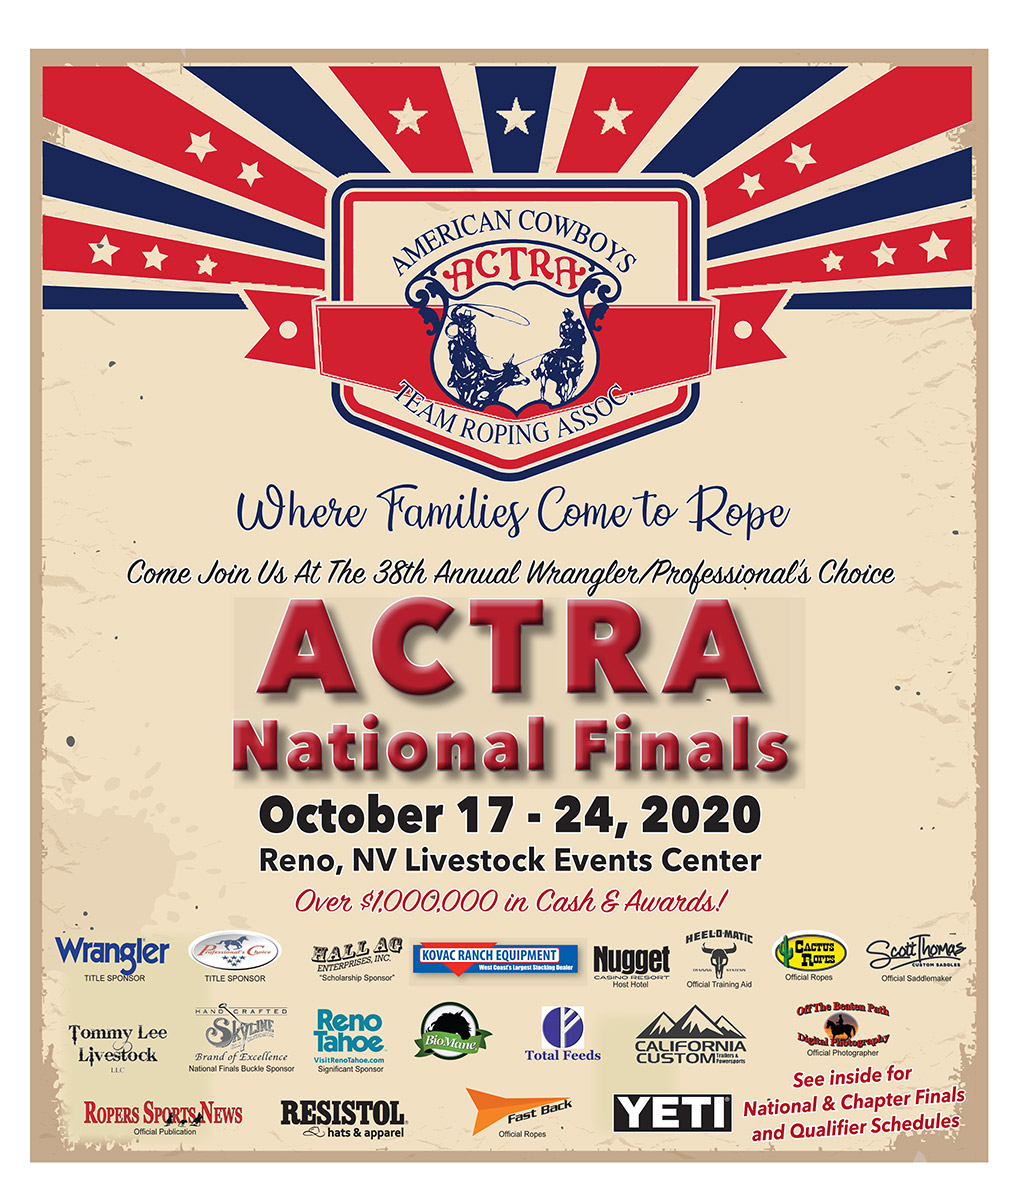 View ACTRA 38th Annual National Finals Program Now!